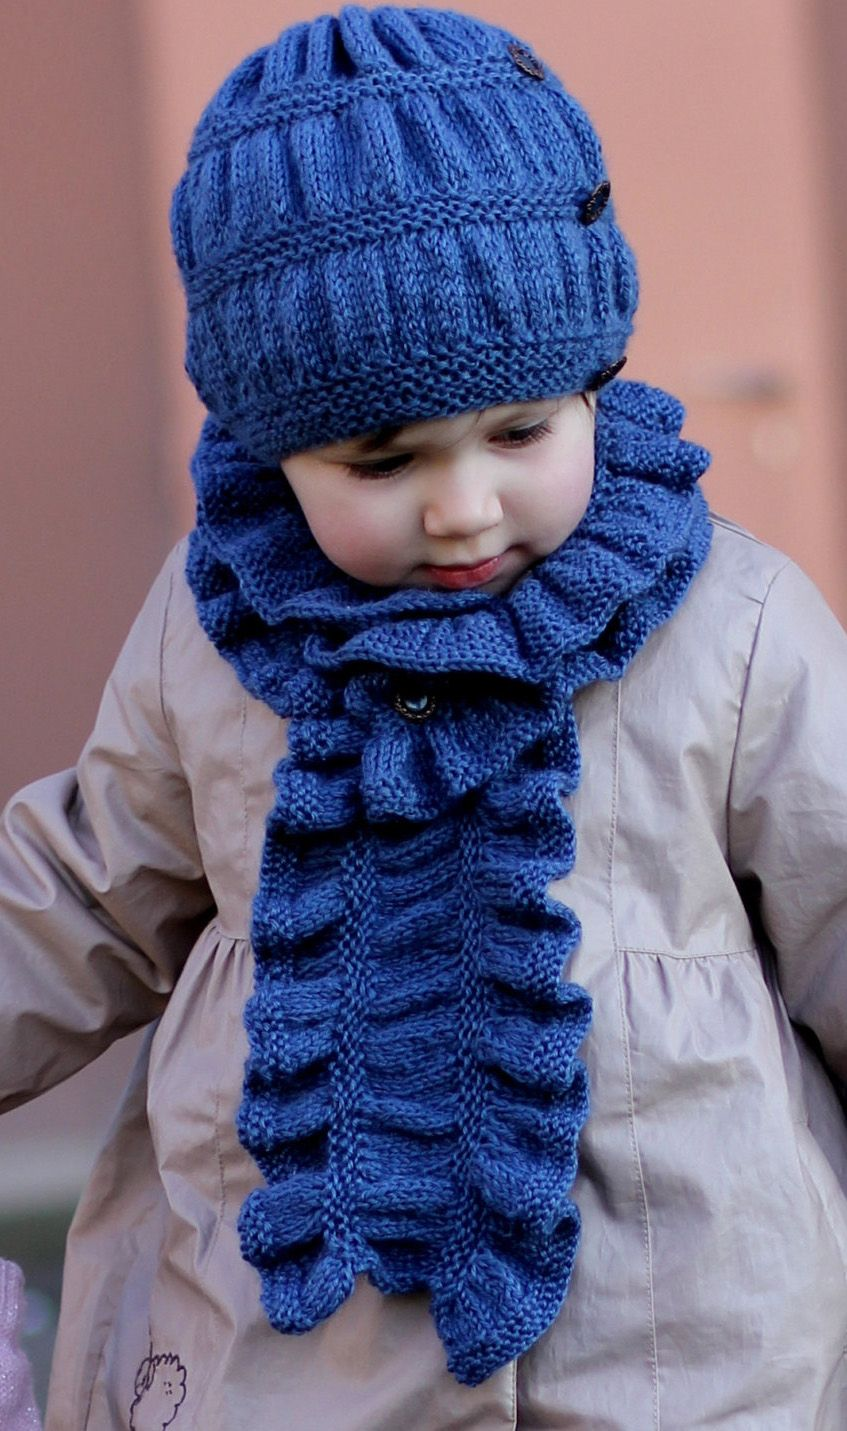 Cokk Winter Hat And Scarf Set For Girls High Quality Knitted Cap Kids Hat Ear Flaps Thick Warm Boy Children Hat Set With Pompom Girl's Hats,scarves & Gloves Sets Apparel Accessories